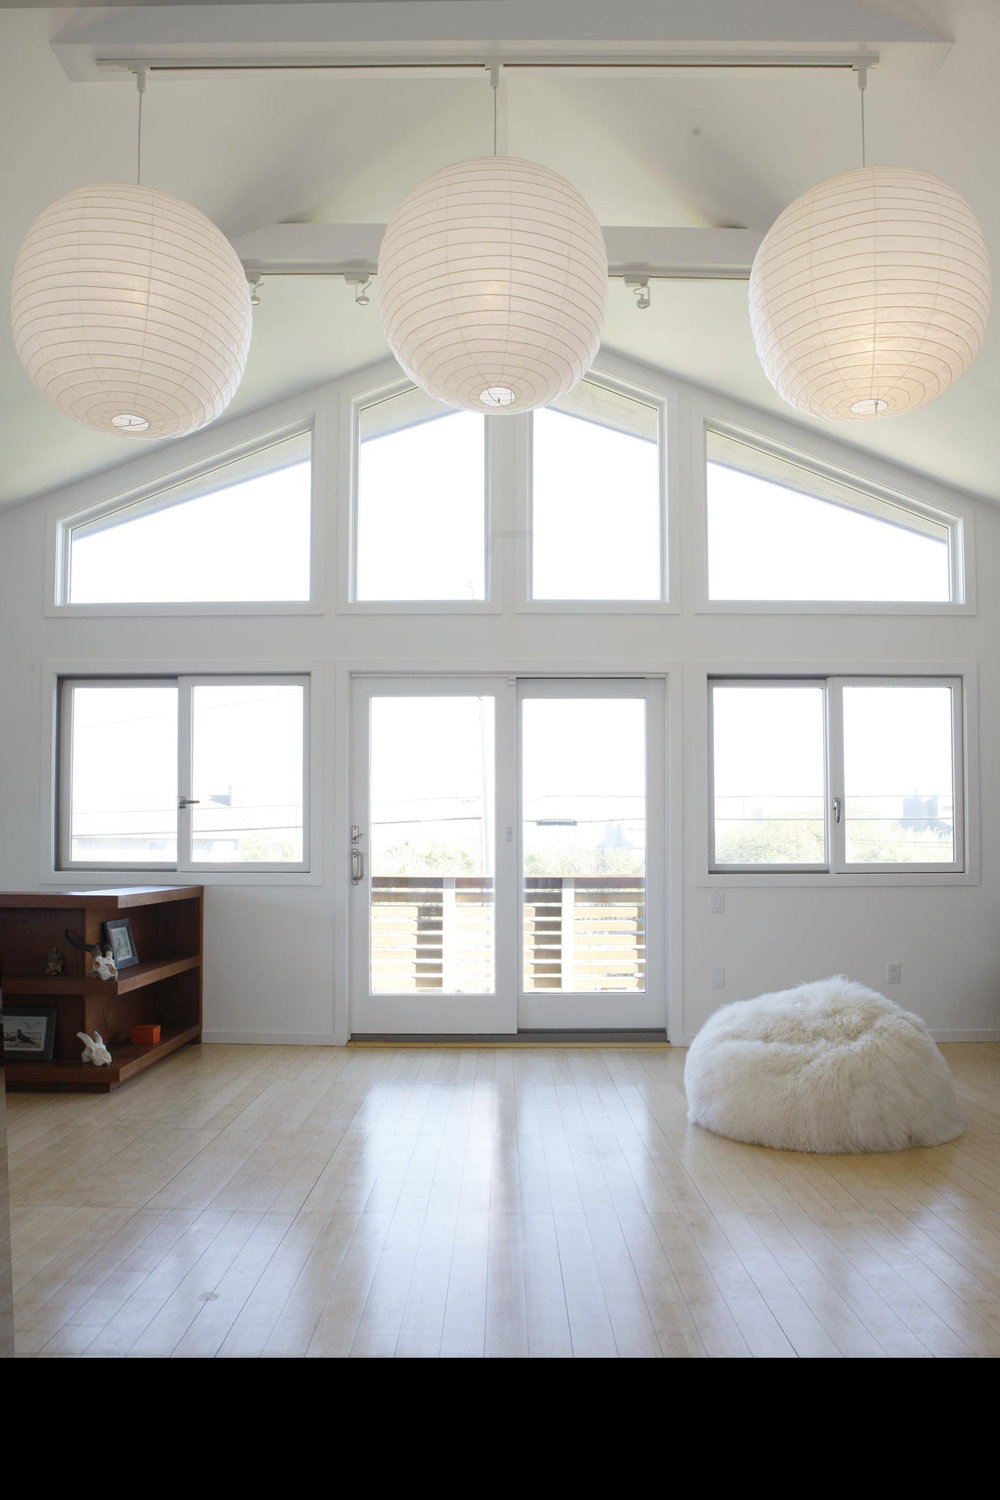 Montauk Beach Home upside house interior natural light windows a-frame